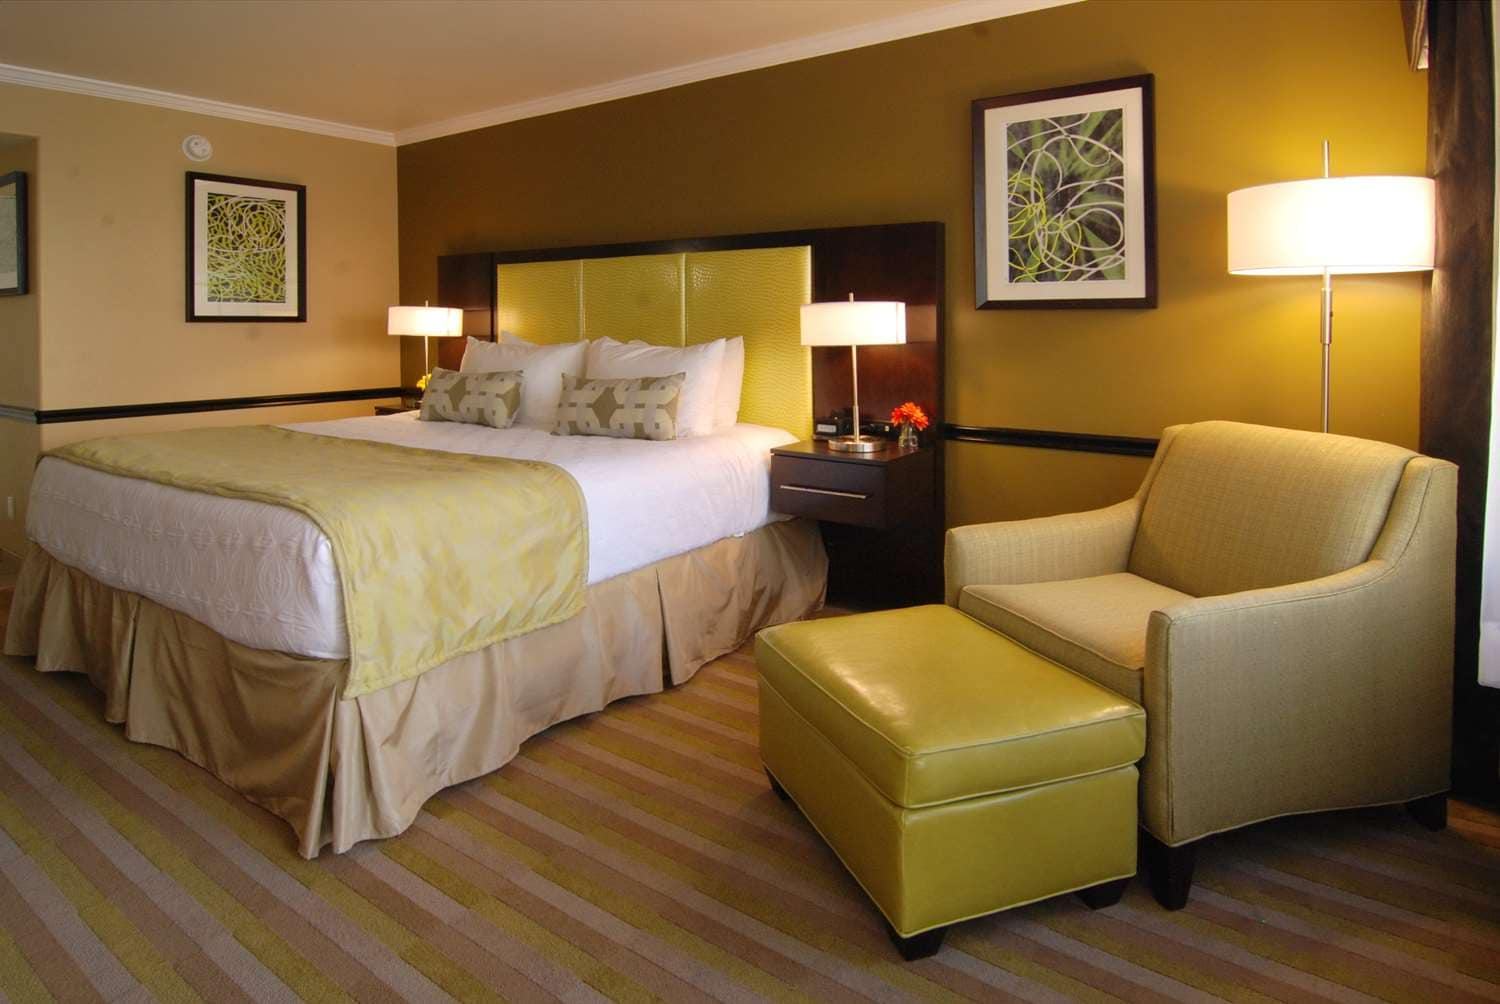 Photo of Best Western Canoga Park King bed and chair